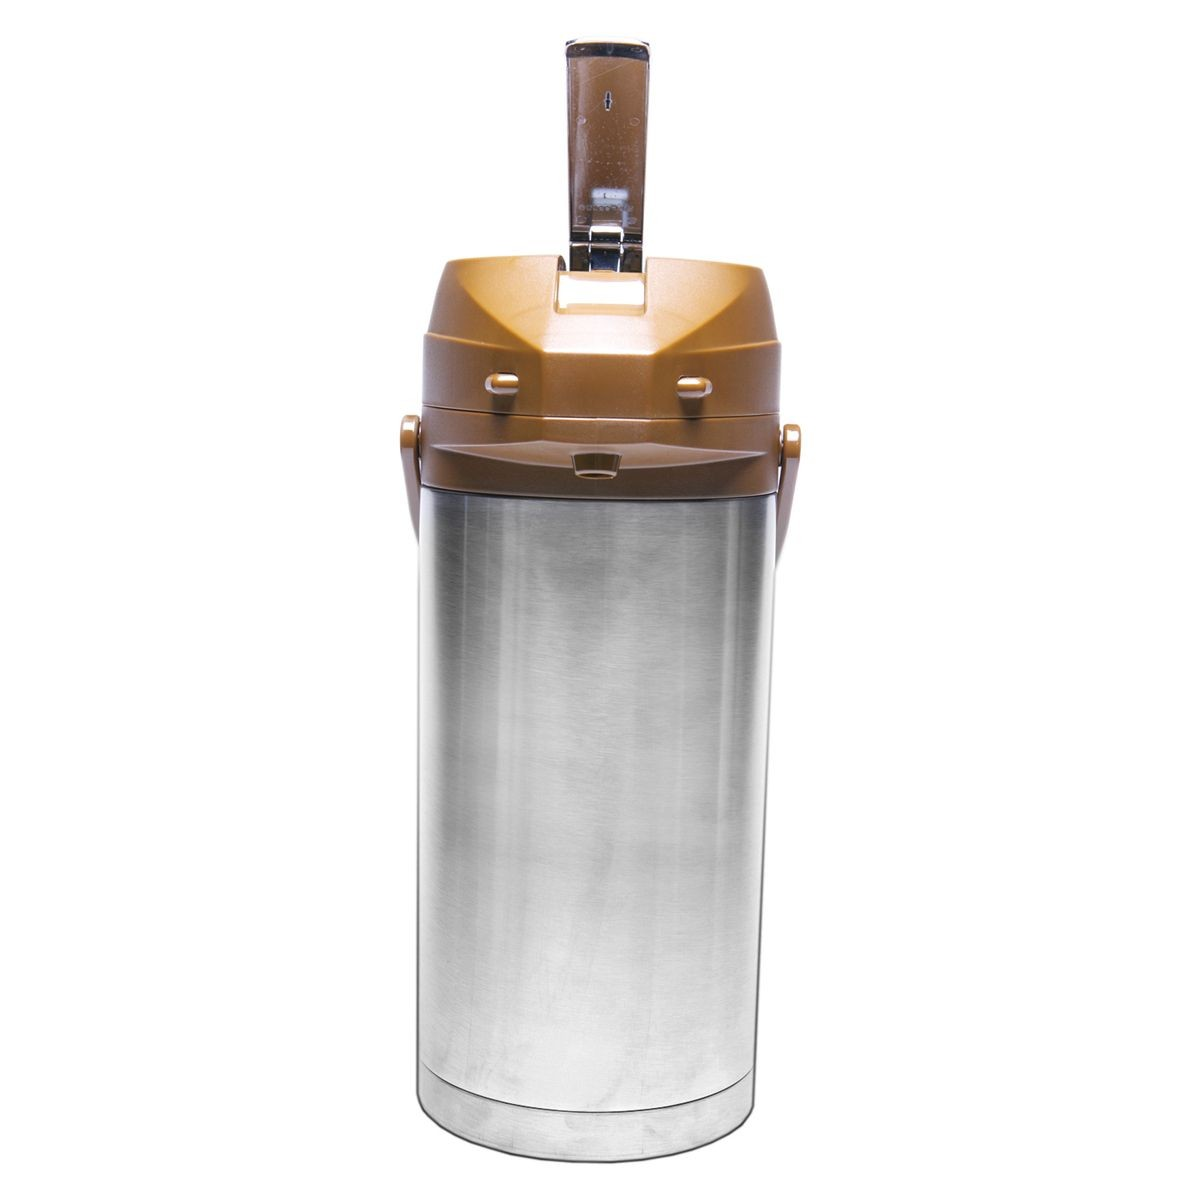 Service Ideas CTAL37BR Brown Top Stainless Steel Lined Color Me SVAC Airpot, 3.7 Liter